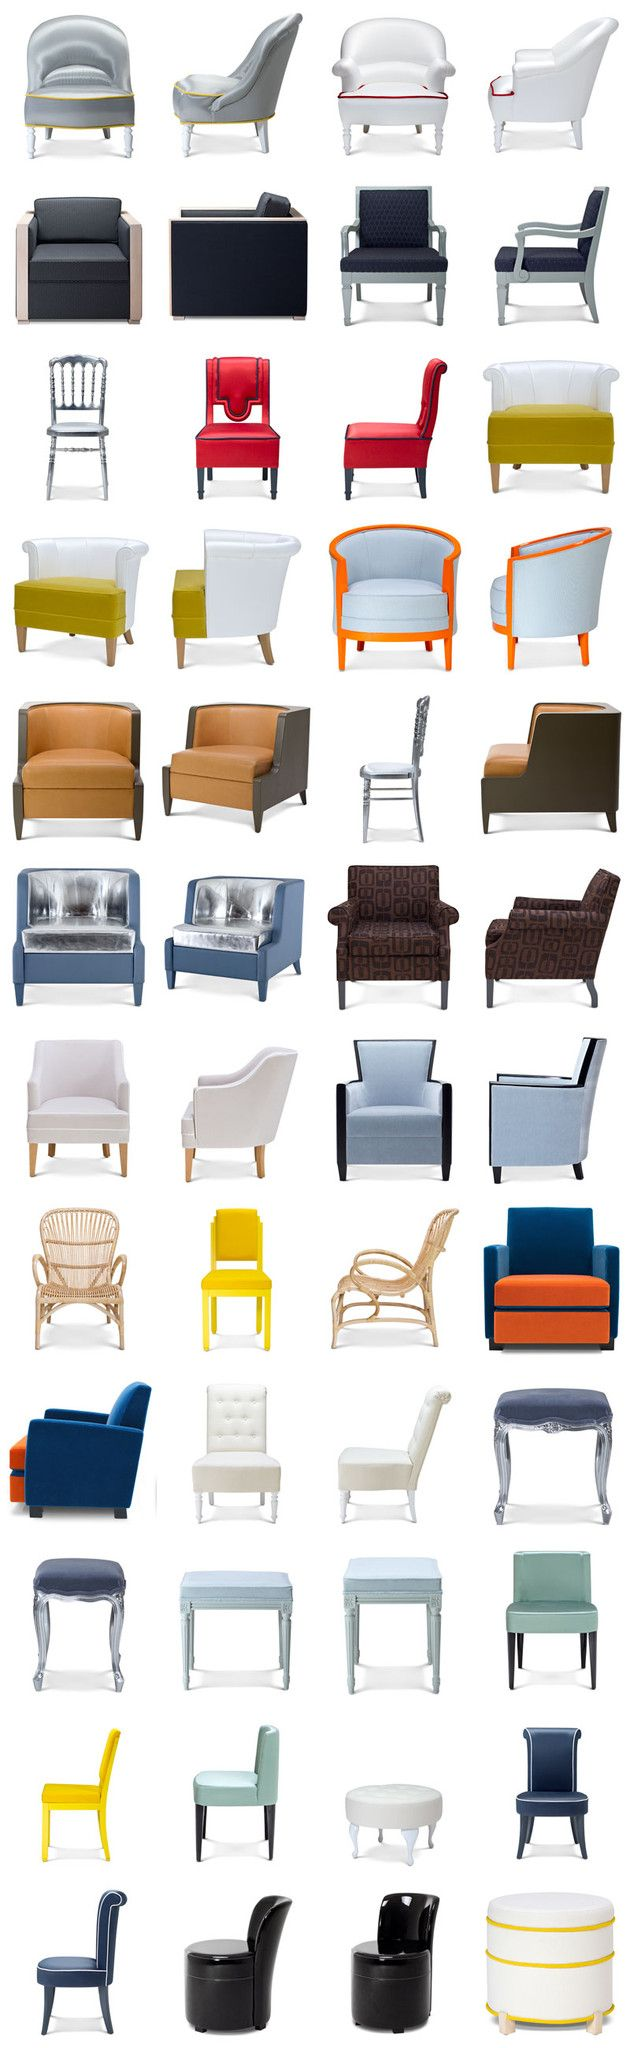 Photoshop Psd Sofa Blocks Best Collection Photoshop Architecture And Interiors